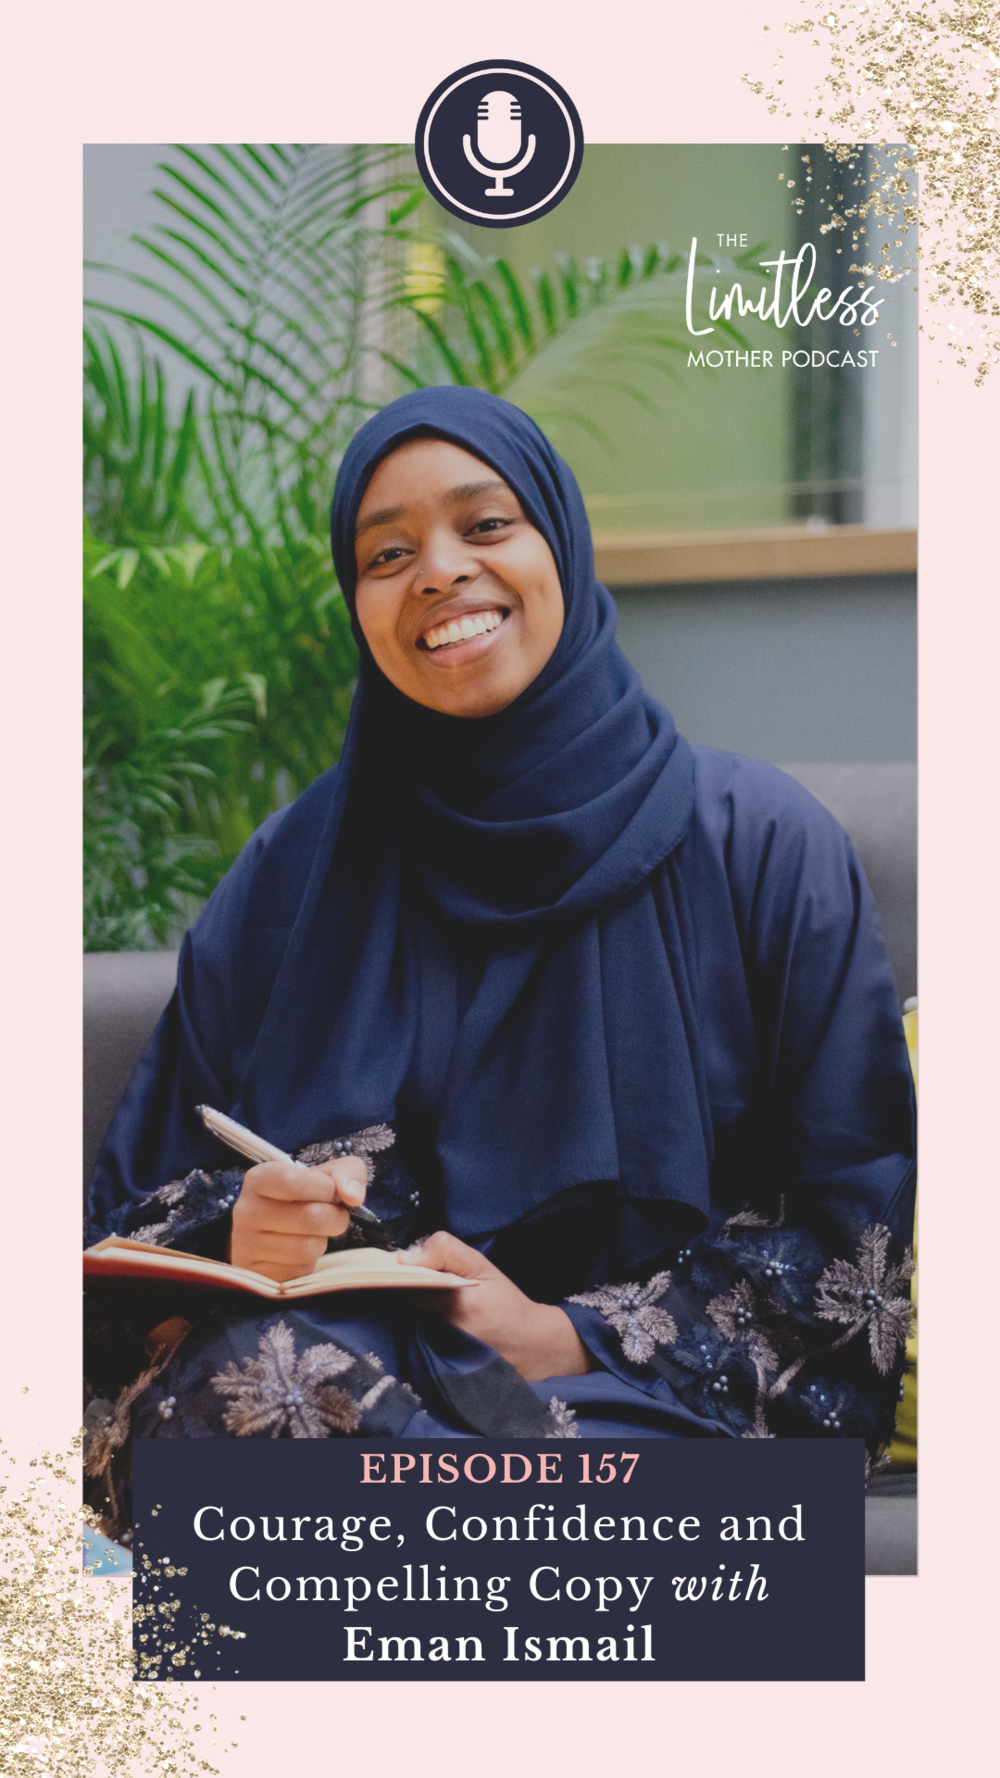 EP157: Courage, Confidence and Compelling Copy with Eman Ismail